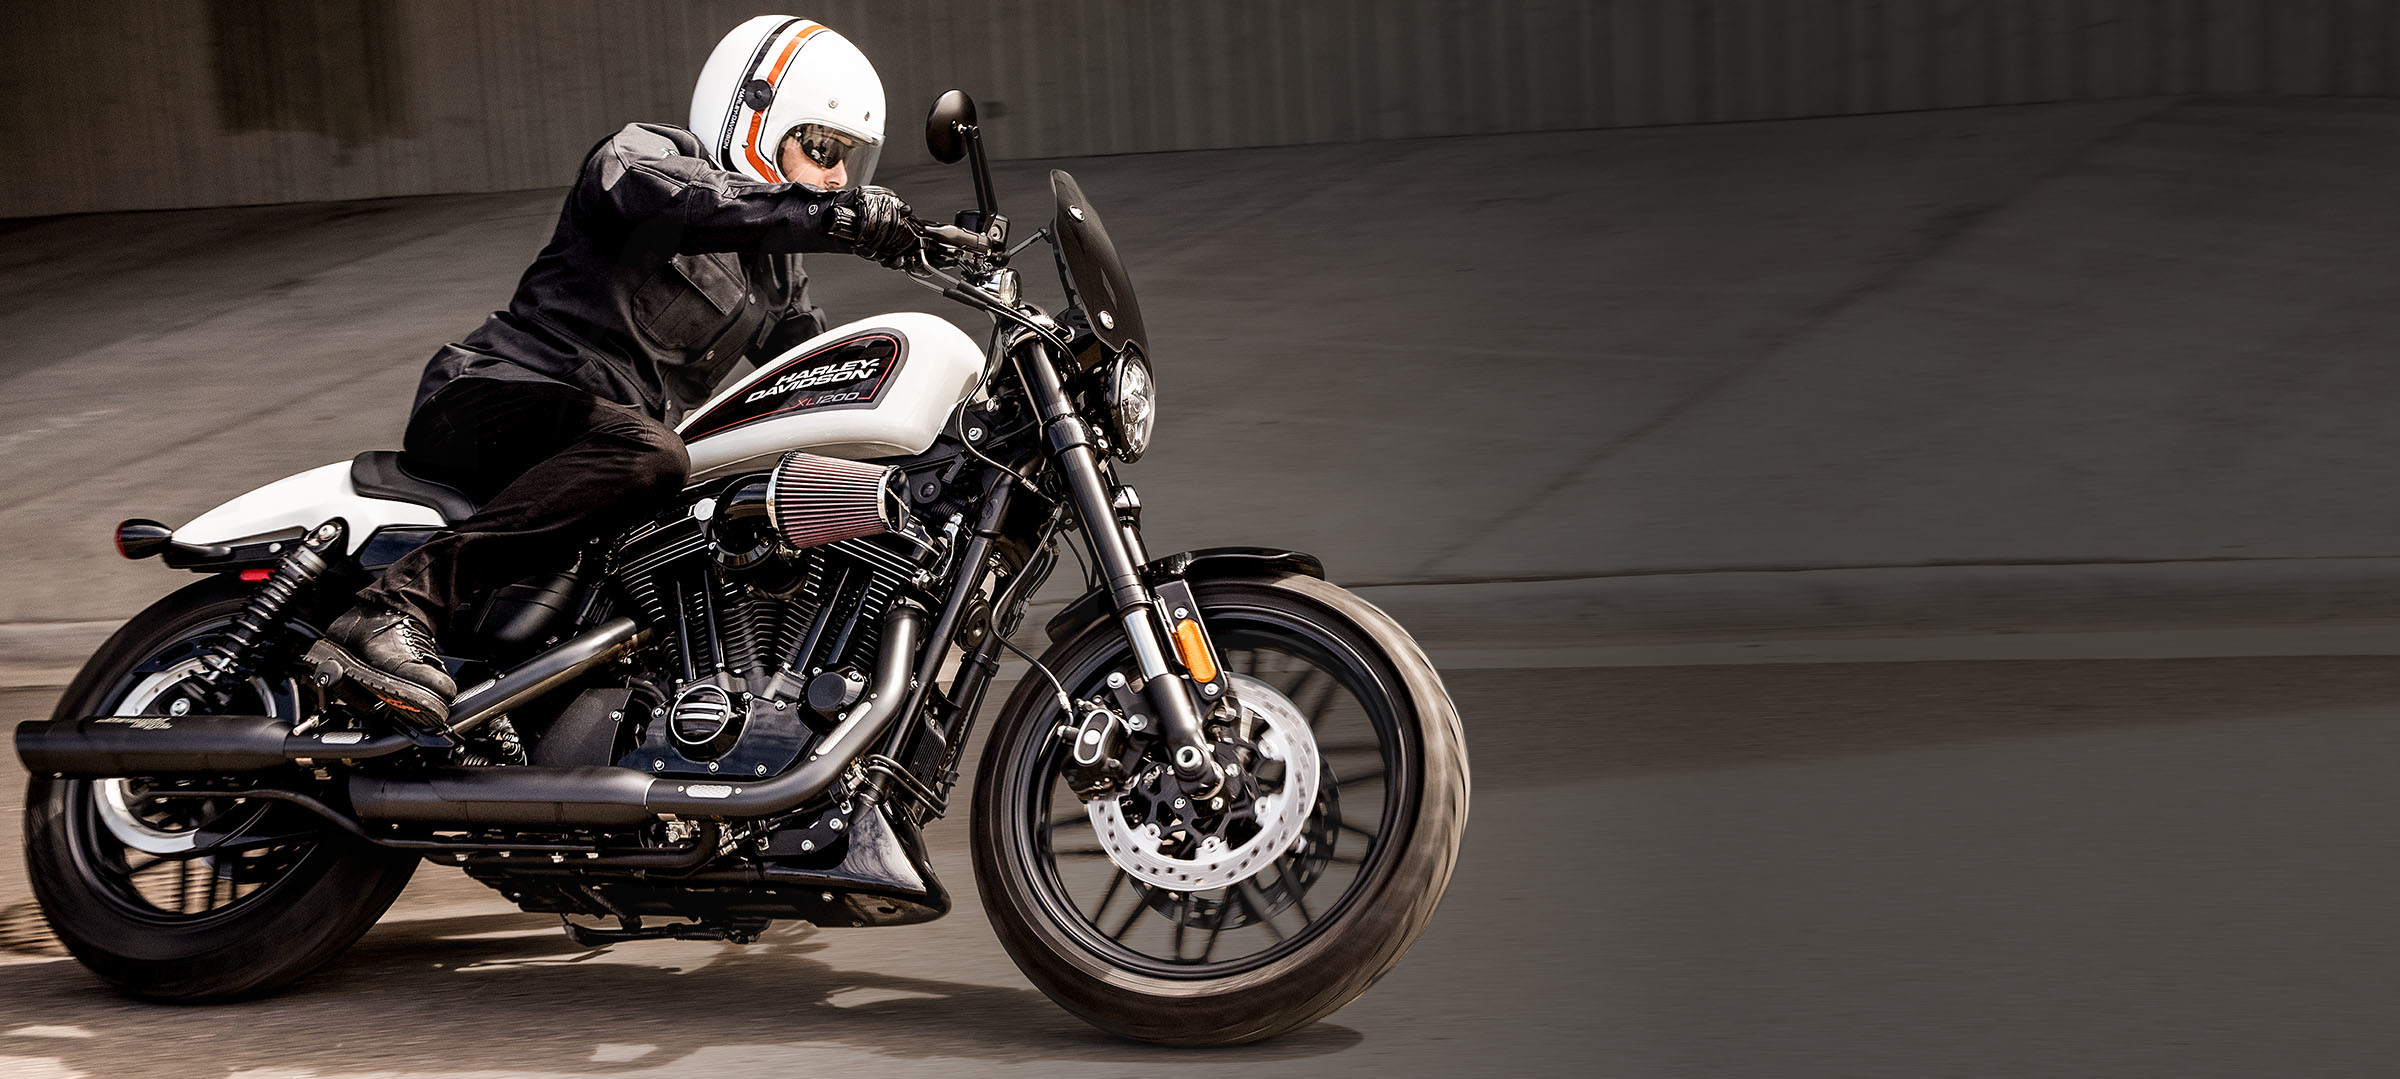 Homepage | Dallas Harley-Davidson®